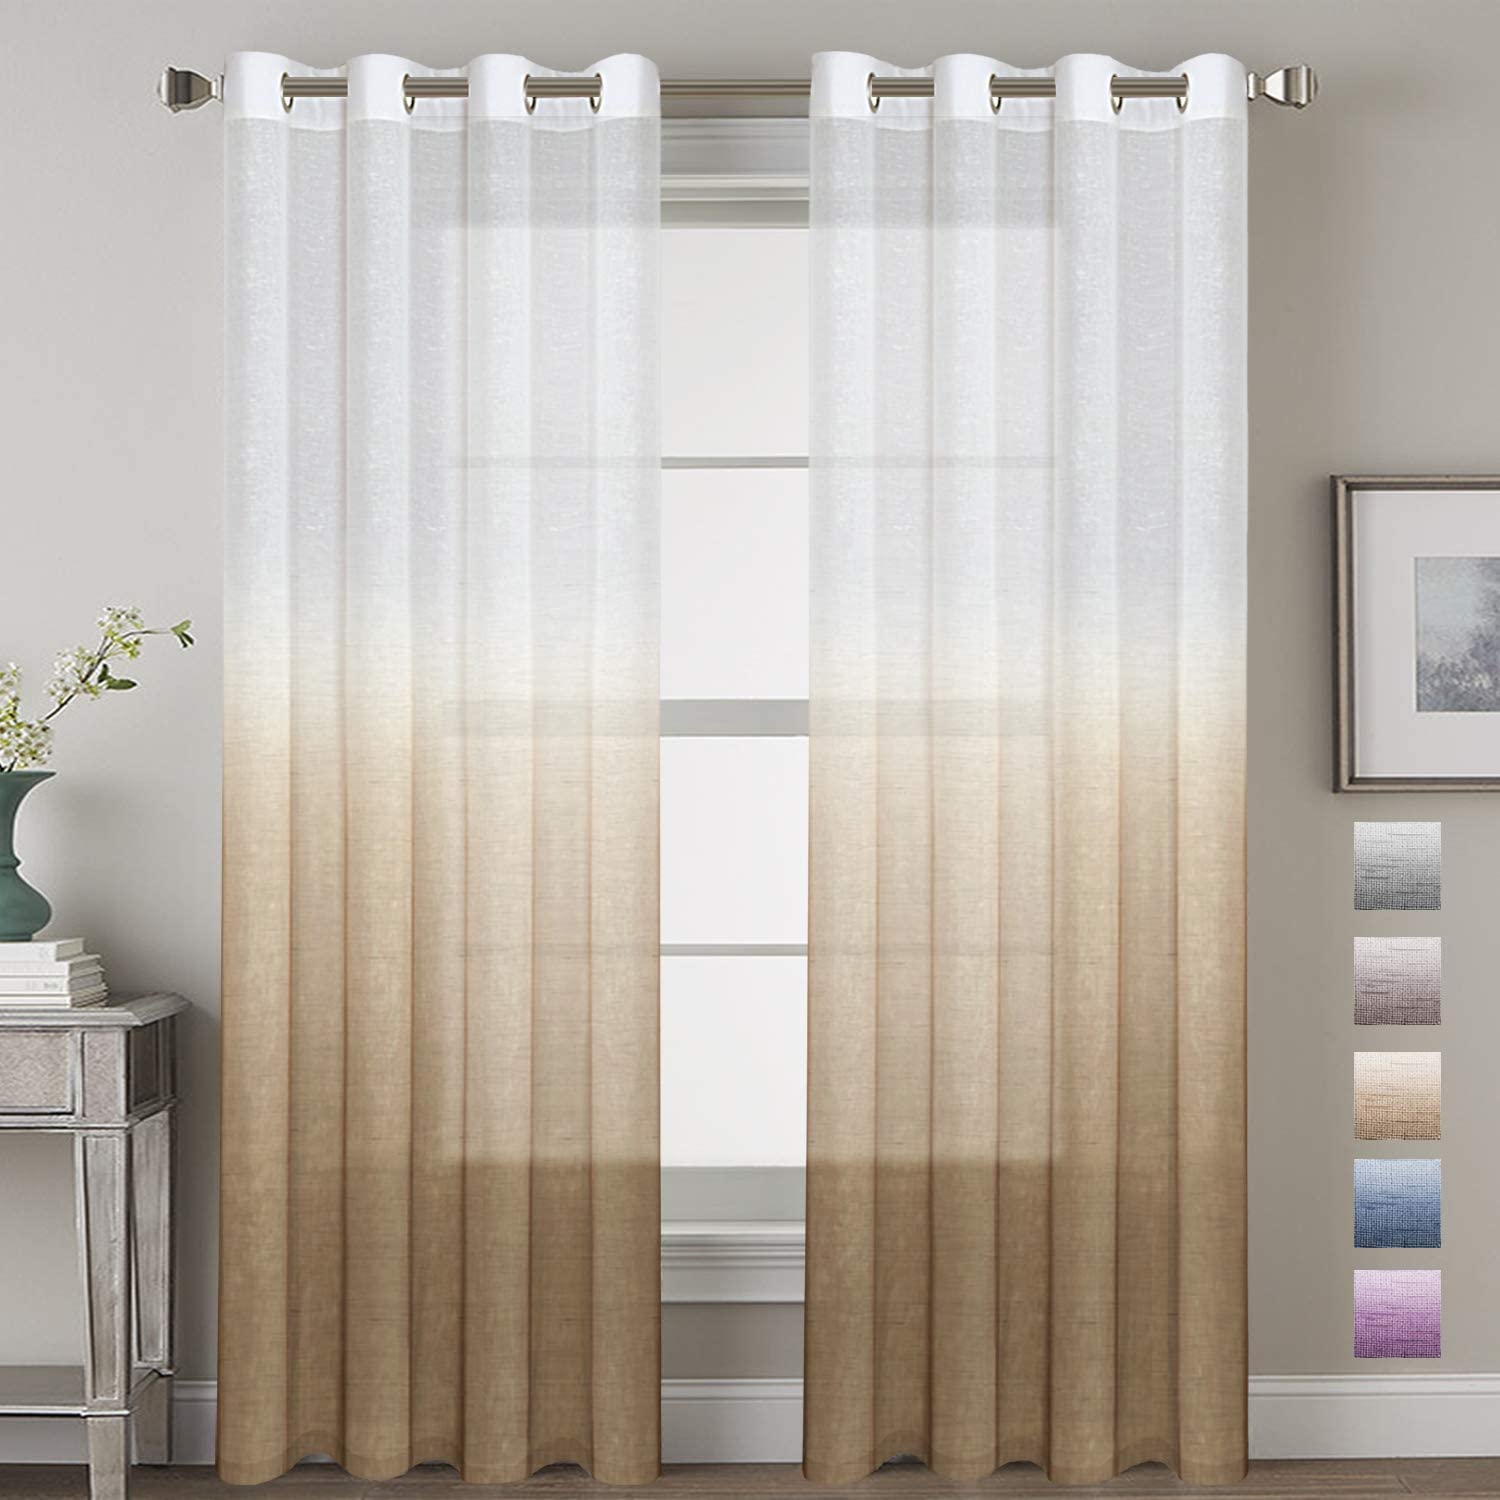 H.VERSAILTEX Soft and Natural Linen Blended Semi-Sheer Privacy Assured Ombre Curtains Energy Smart Nickel Grommet Curtain Panels with Adjustable Tie-Back -Set of 2, Taupe, 52x96 - Inch